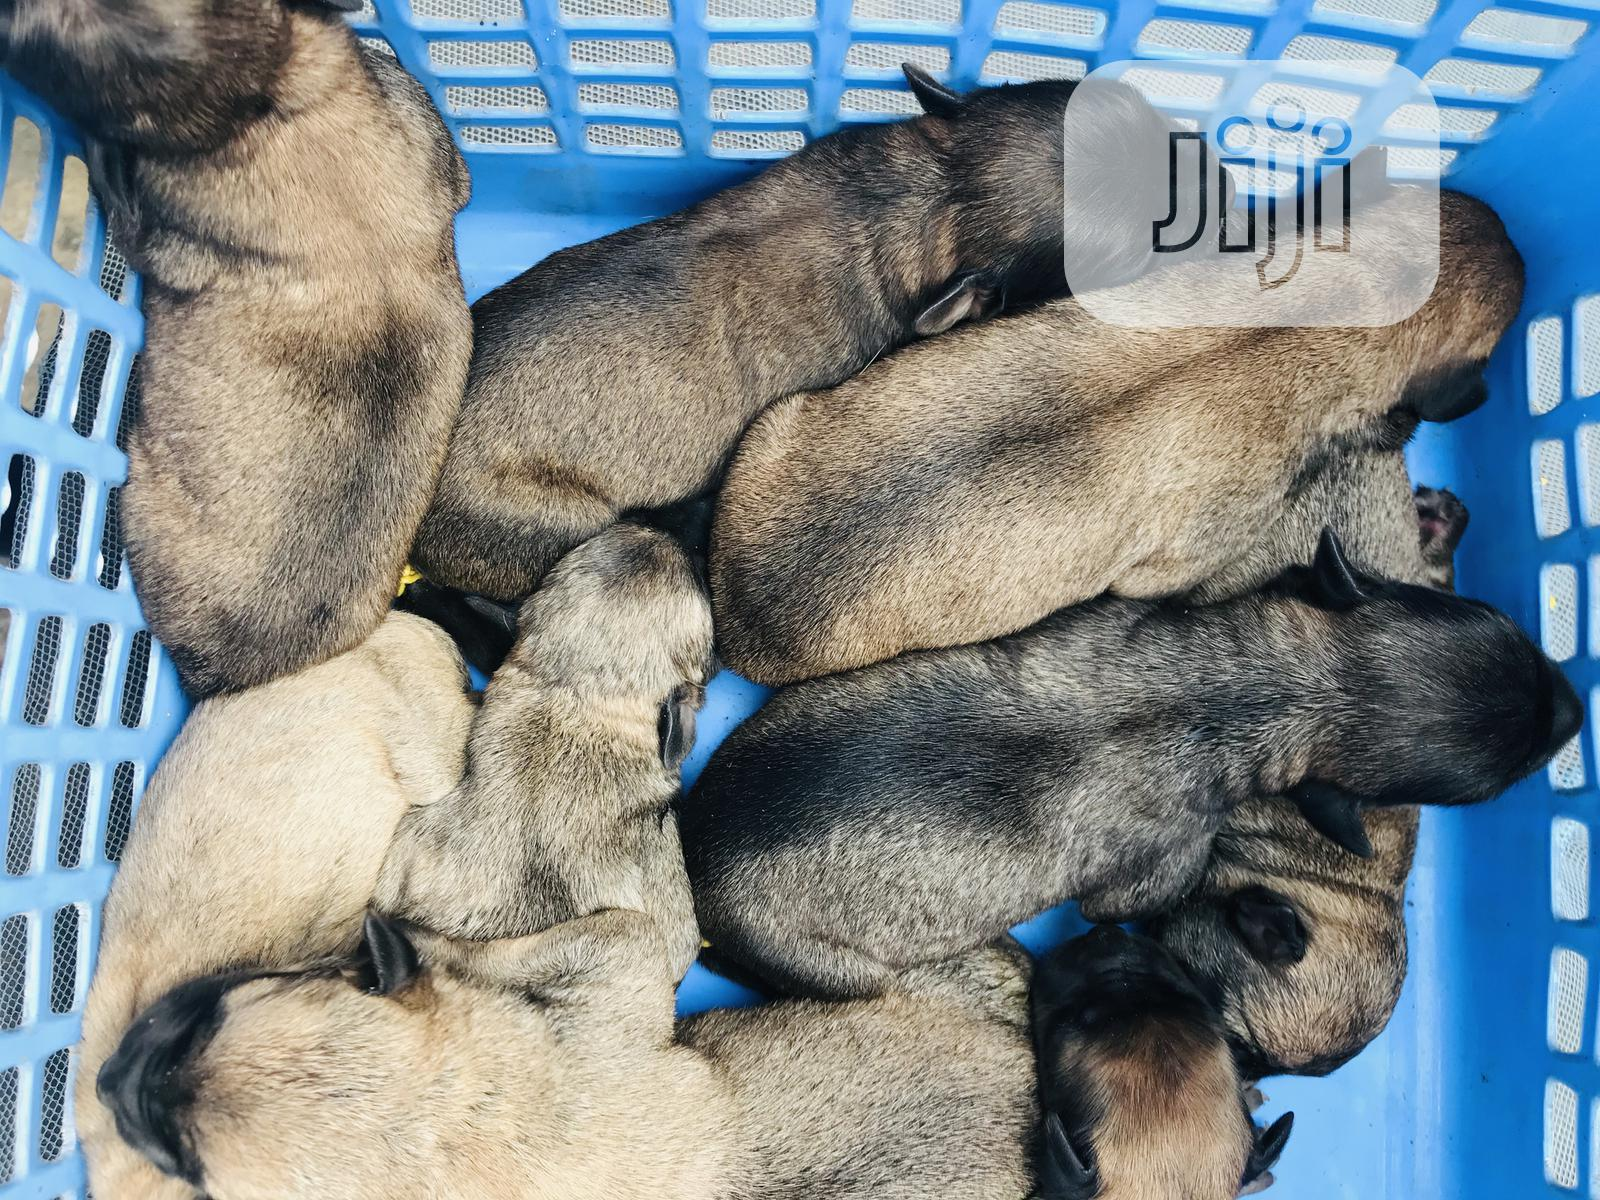 Archive: 0-1 Month Female Purebred Bullmastiff